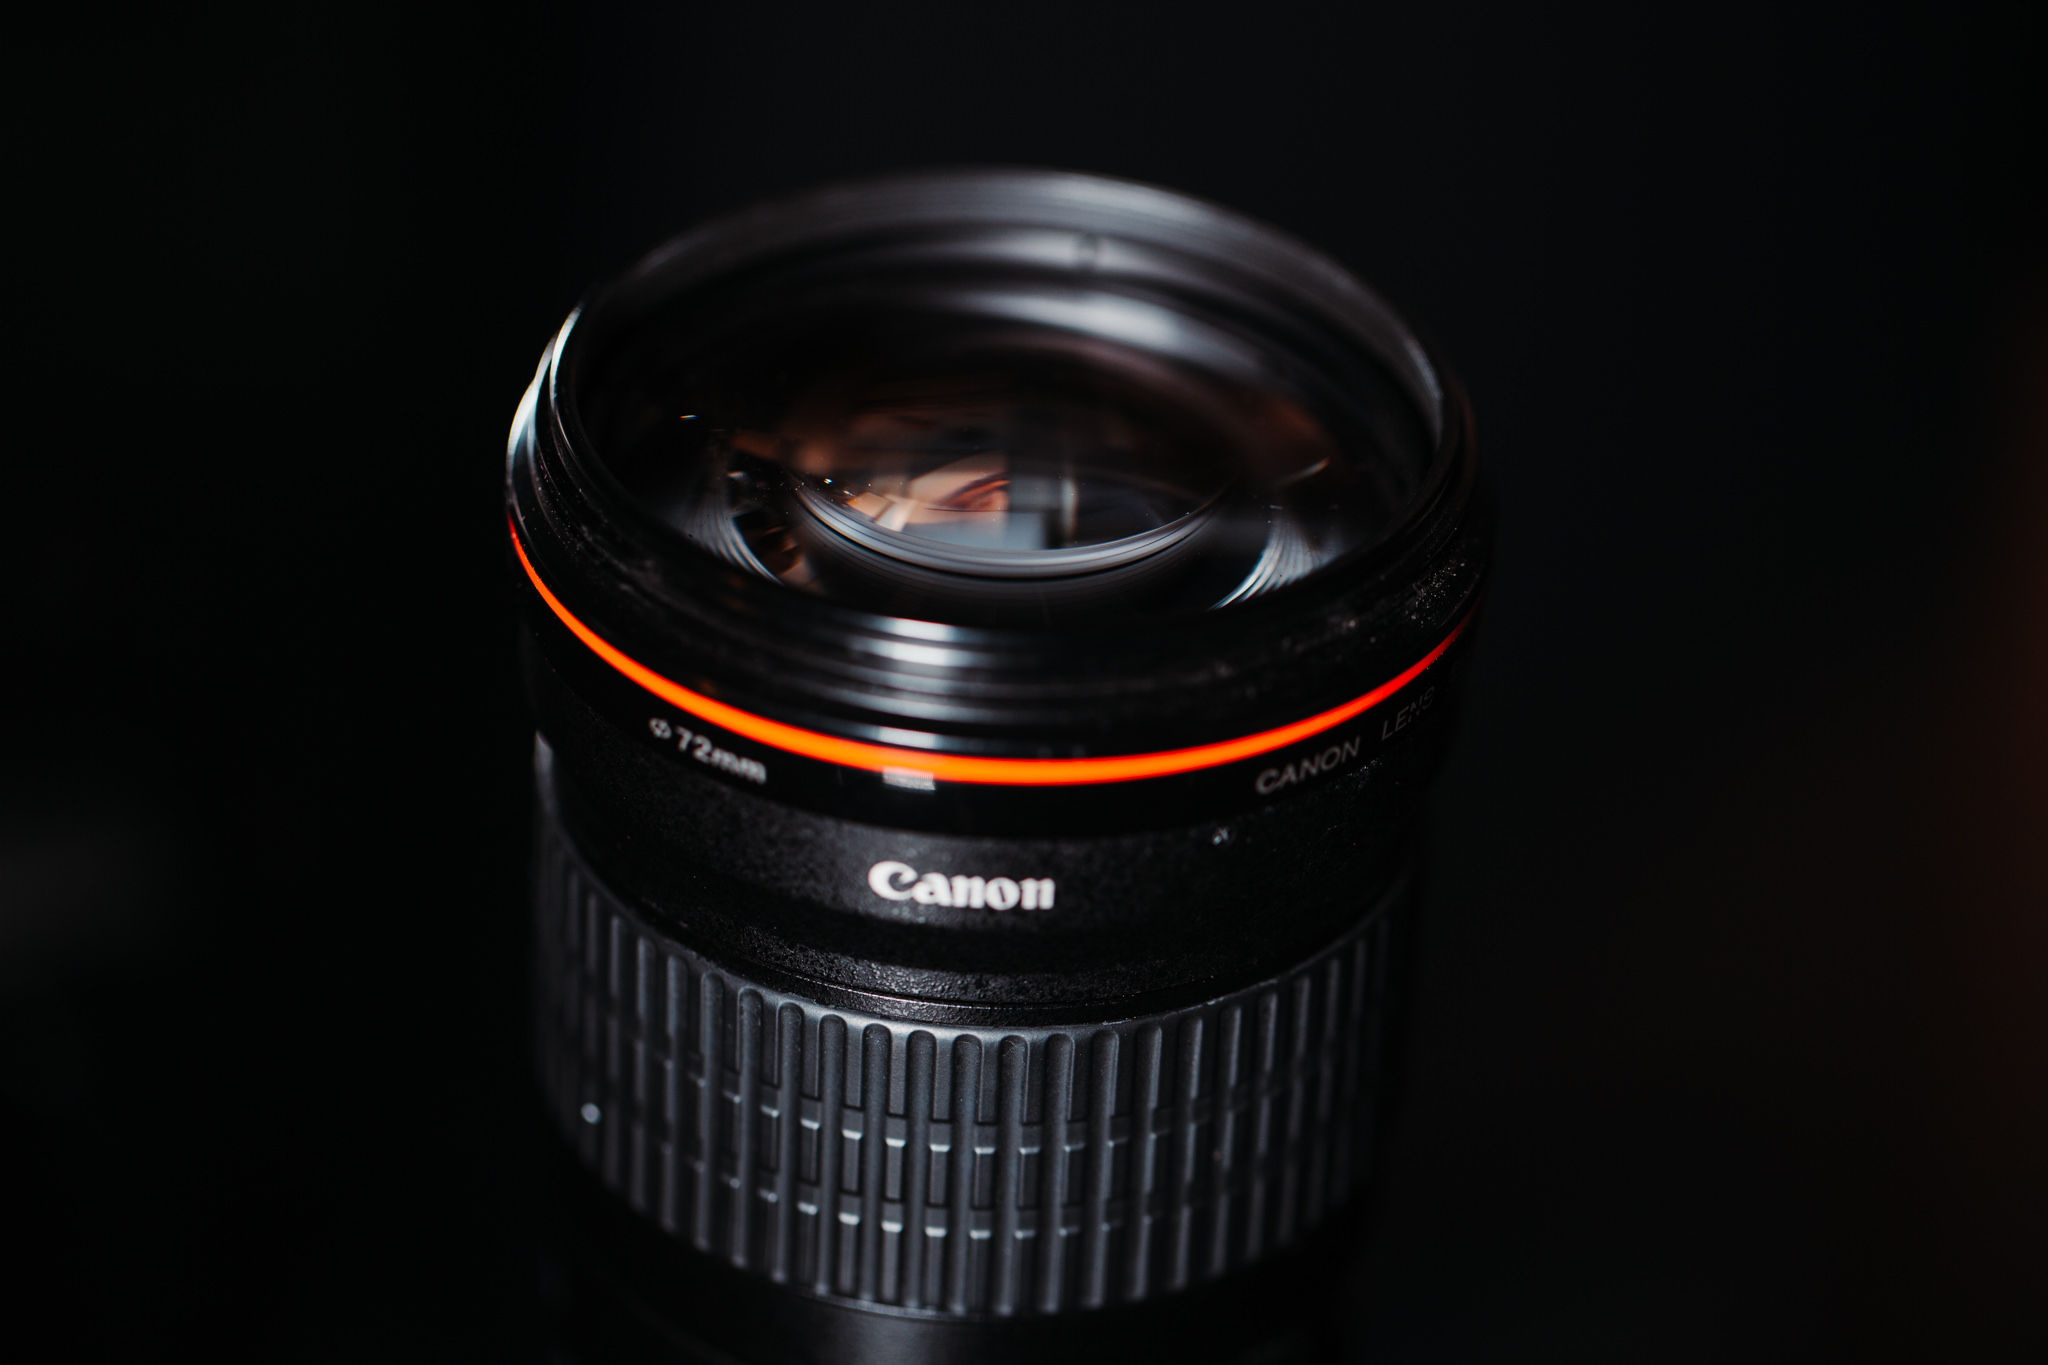 A 'fast' Canon lens that is great for low light and blurring backgrounds